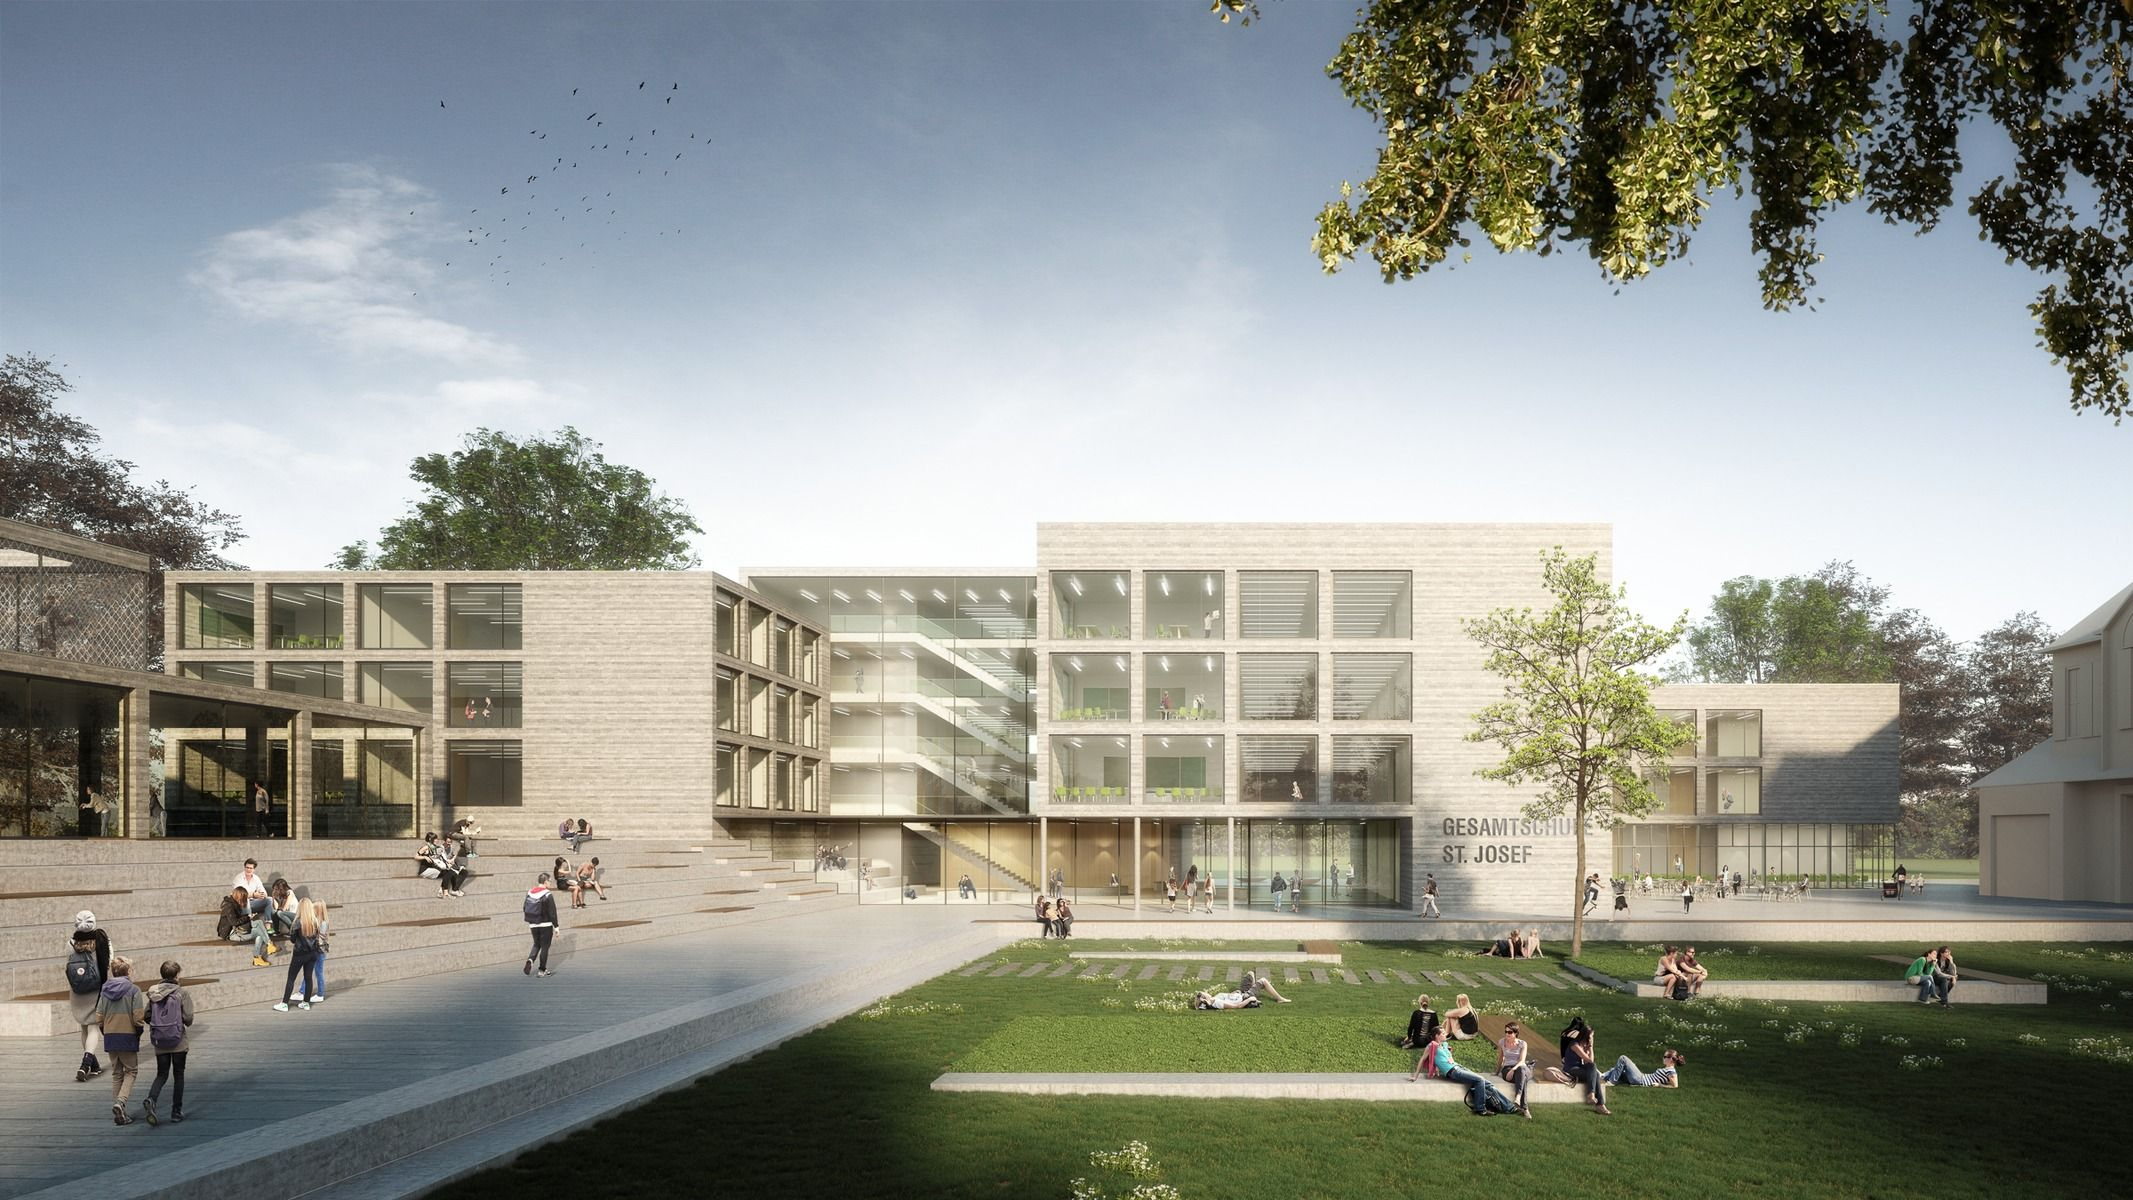 Architekt Bad Honnef Gesamtschule St. Josef Bad Honnef Acms Architekten Gmbh | 2017 Project Website: Http://www.rendertaxi.de/en/references/projects/01516.… | Bad Honnef, Schule, Neubau